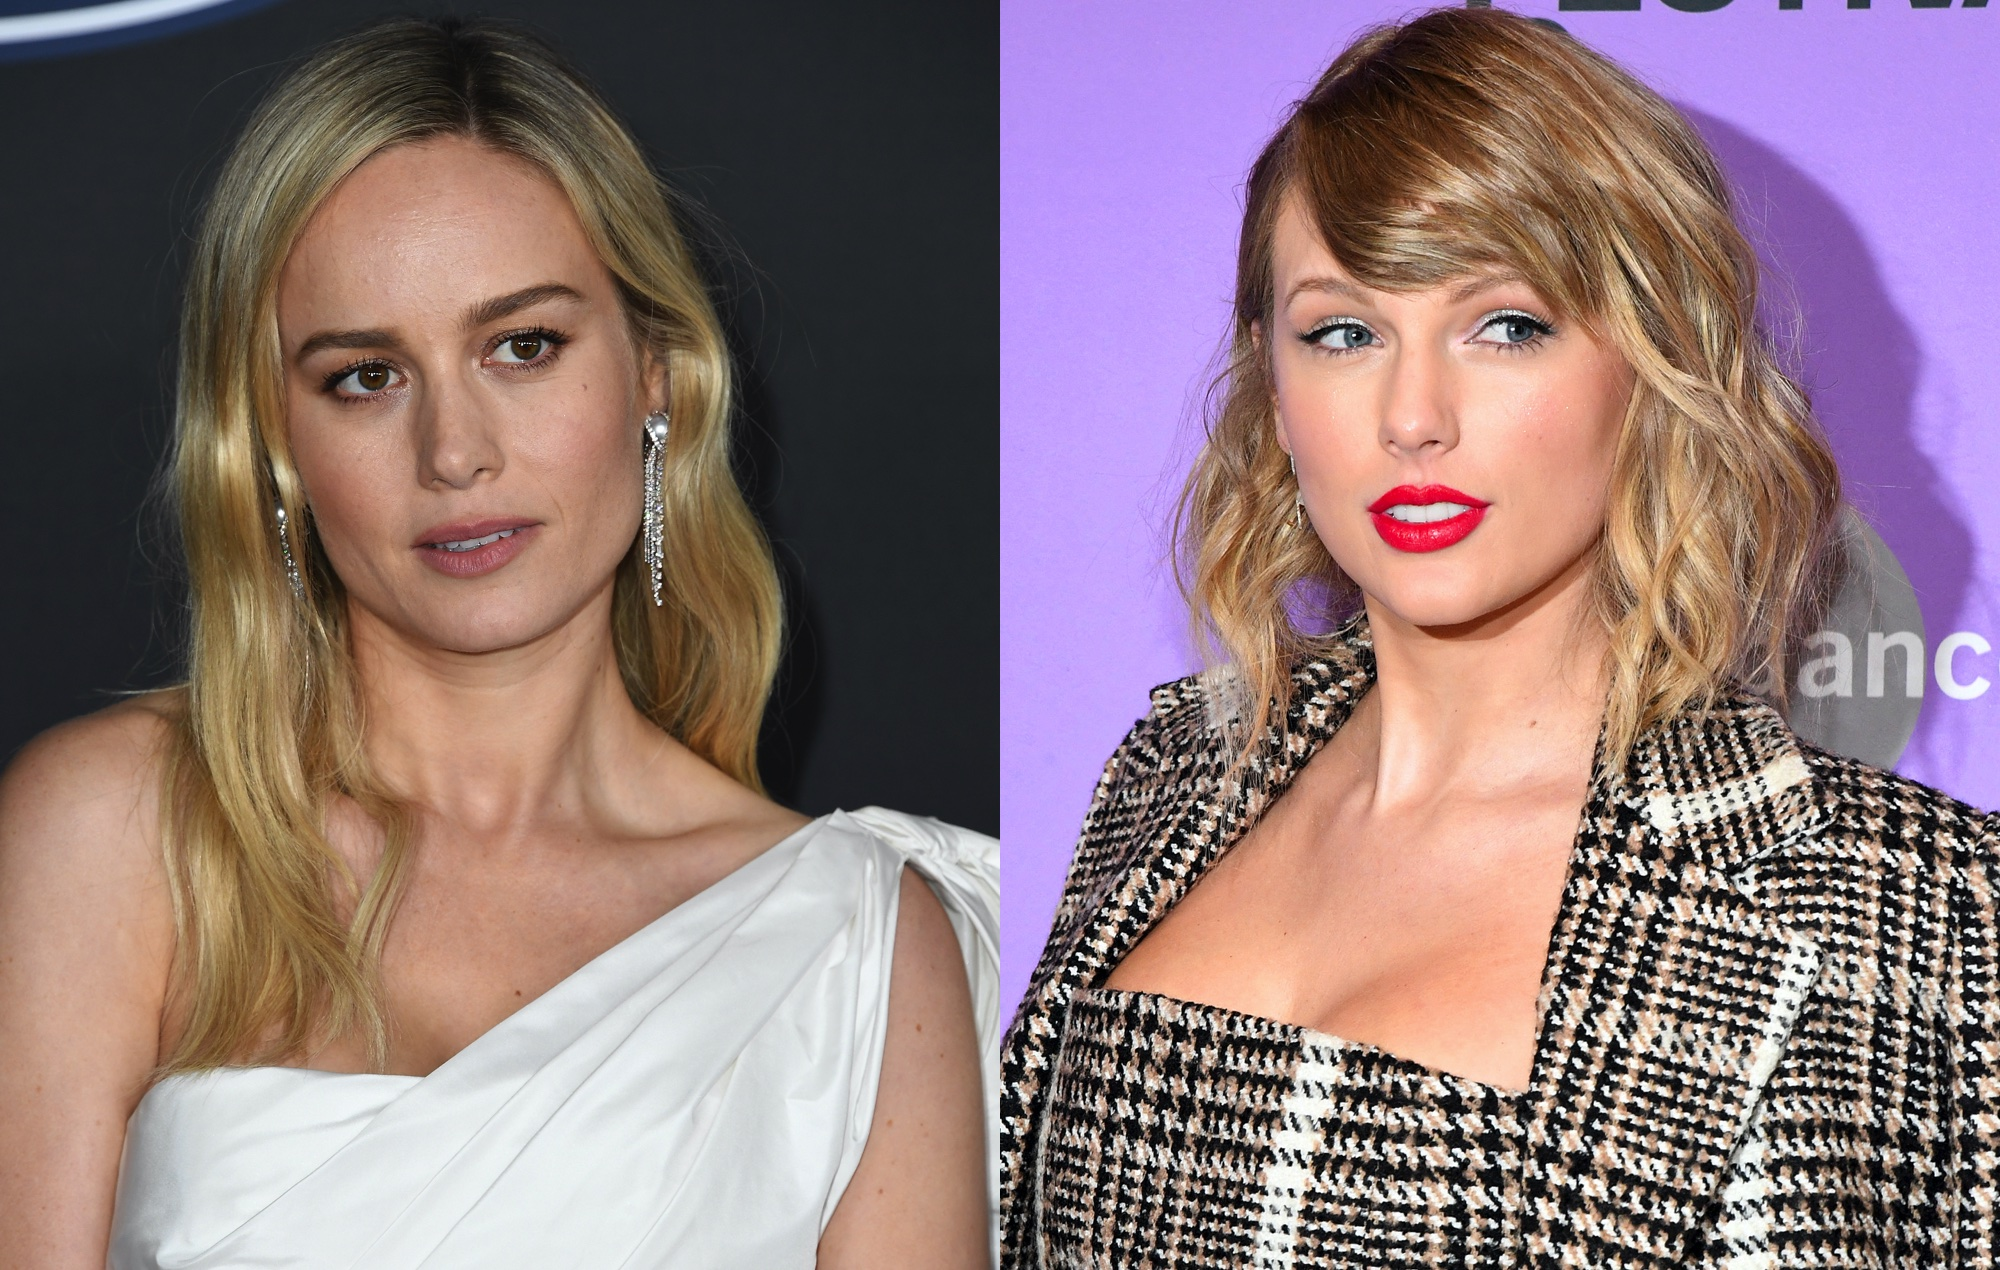 La cover de 'The 1' de Taylor Swift por Brie Larson